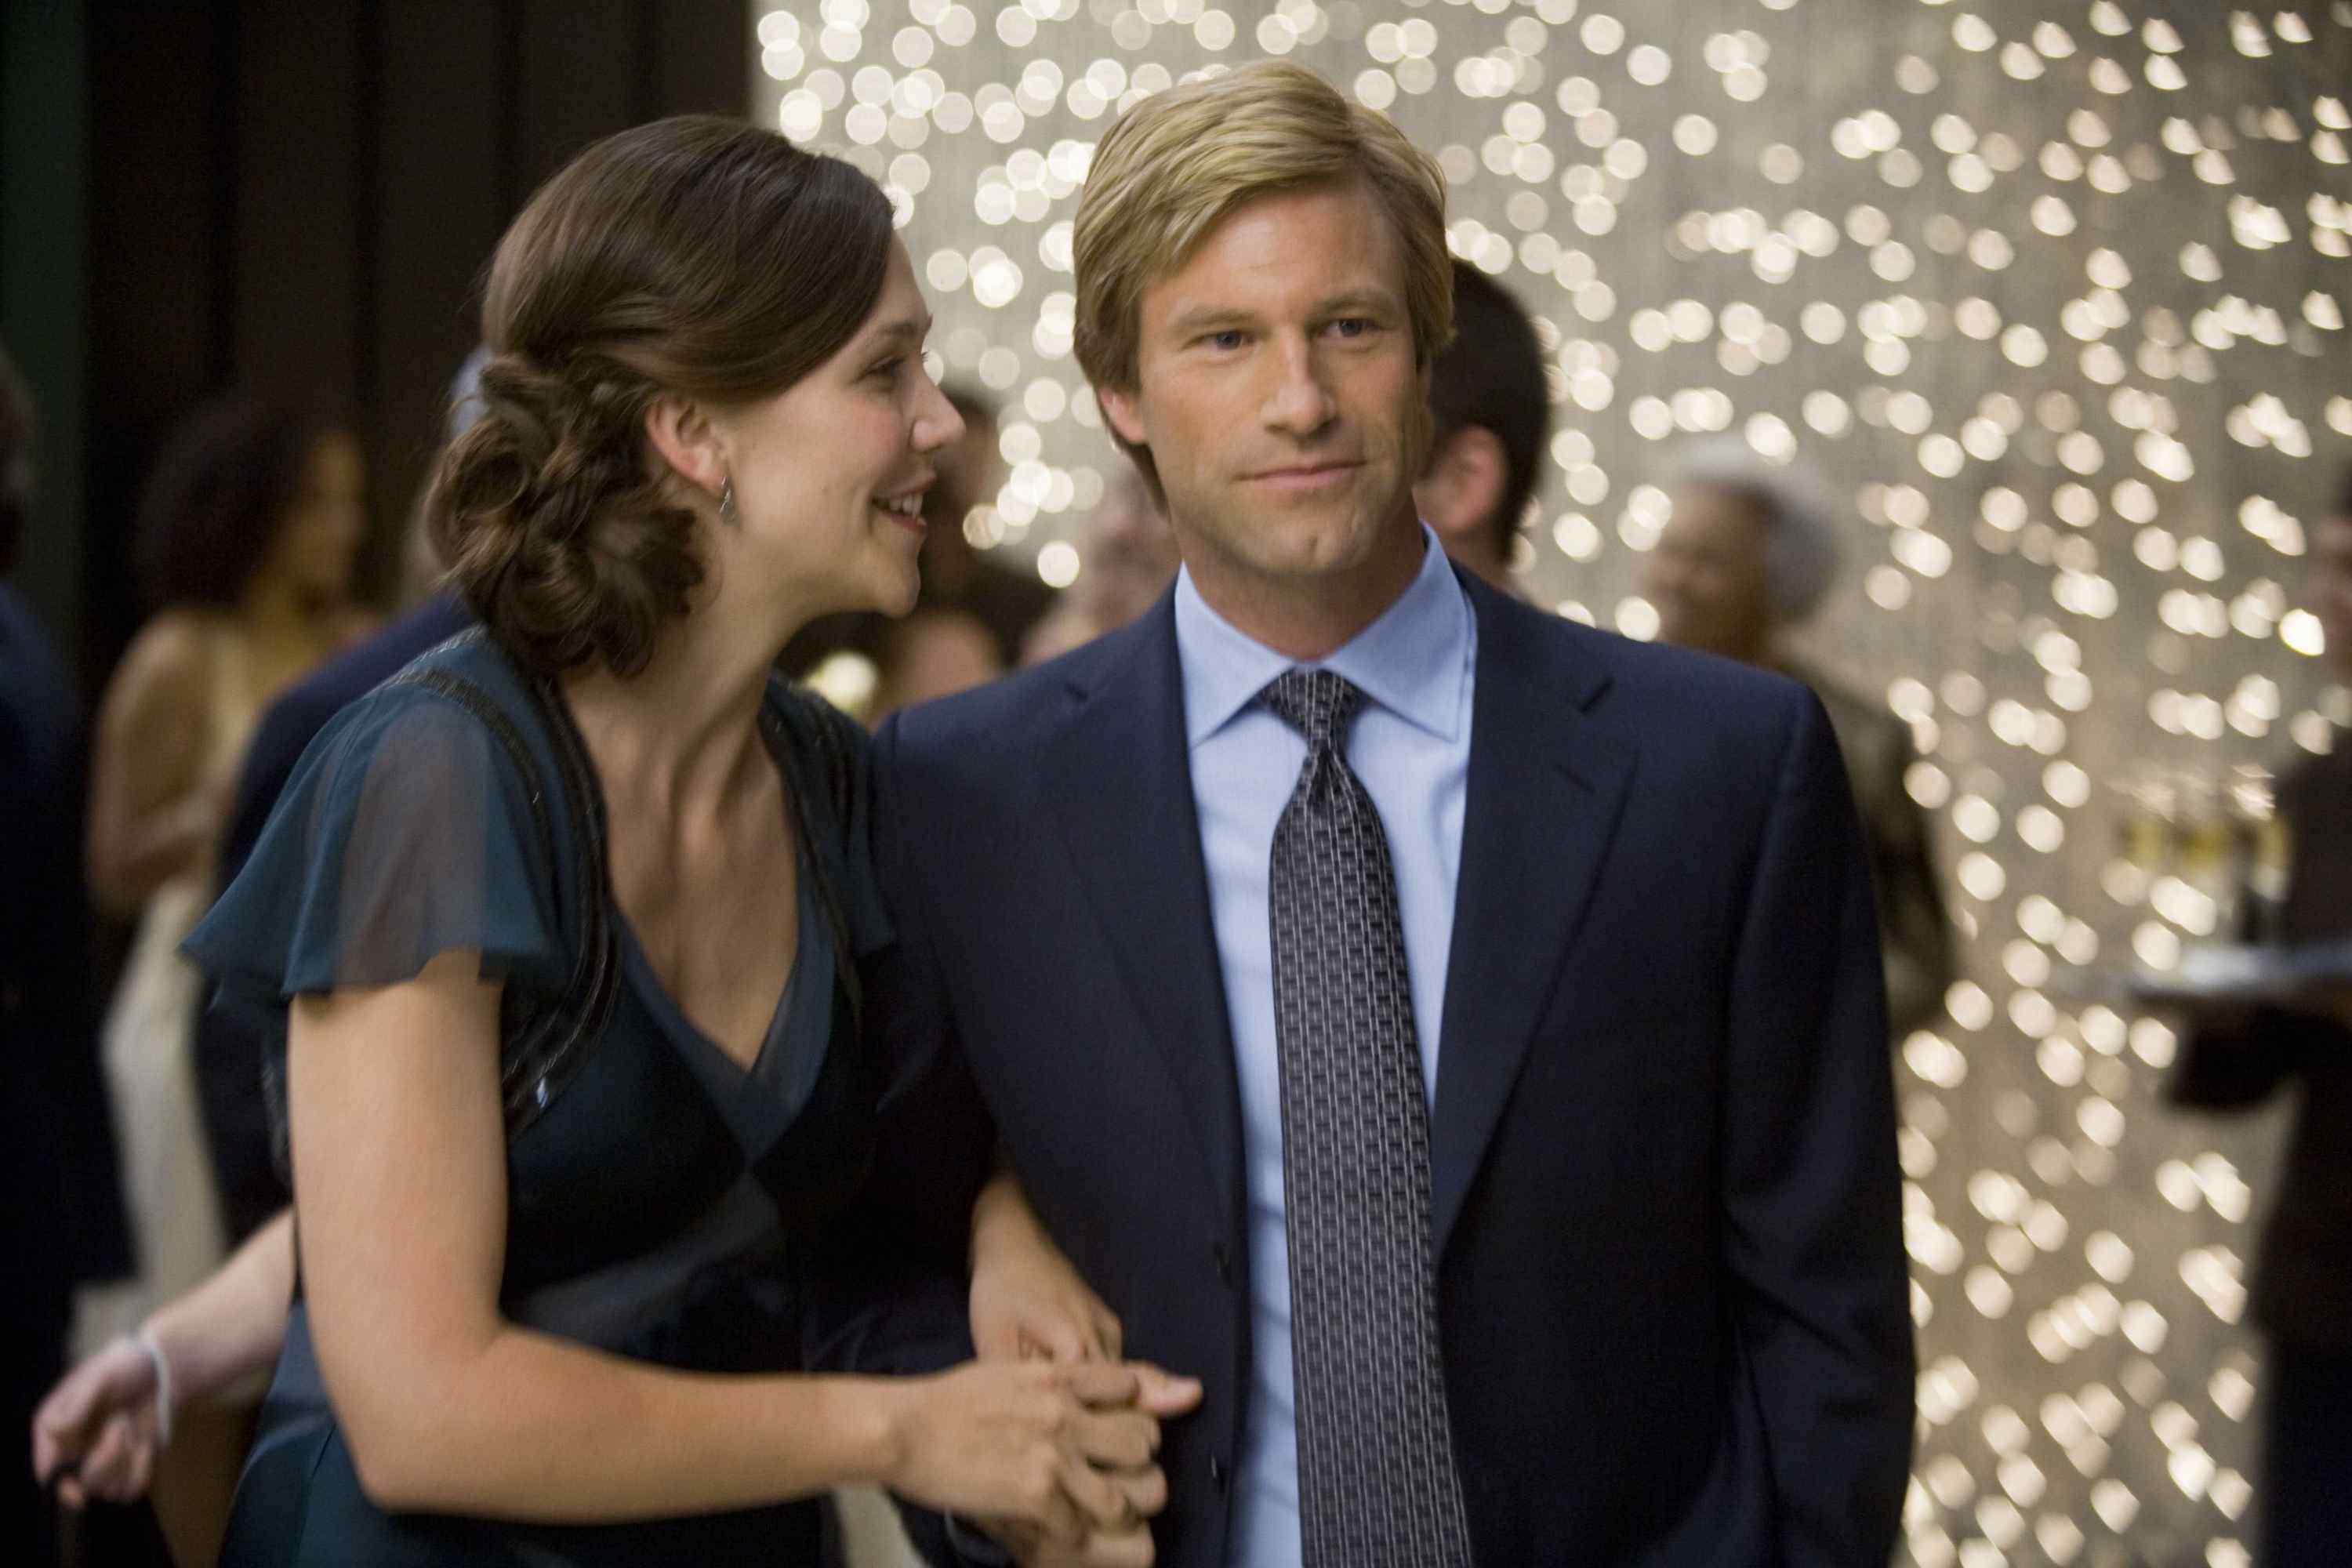 MAGGIE GYLLENHAAL stars as Rachel Dawes and AARON ECKHART stars as Harvey Dent in Warner Bros. Pictures' and Legendary Pictures' action drama